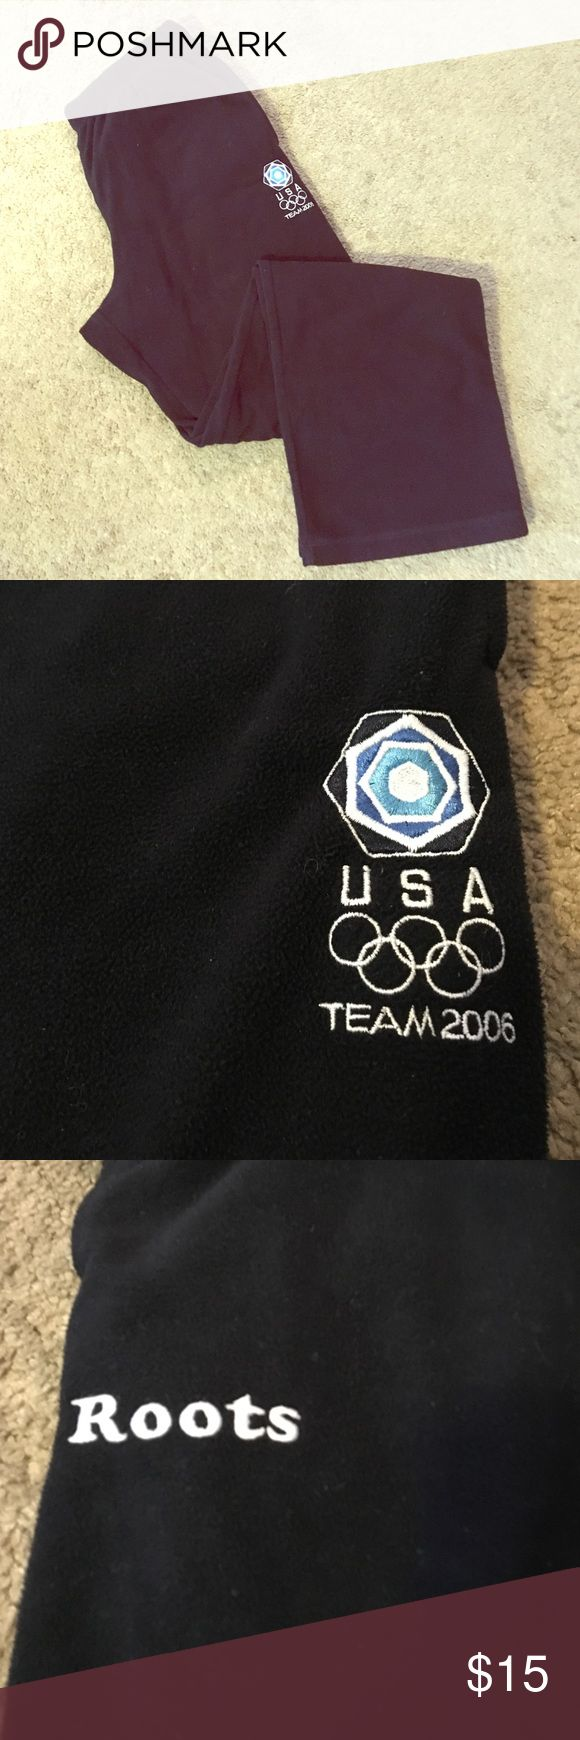 TEAM USA 2006 Olympic Team fleece pants Official Team USA flee pants from the 2006 Turin Olympic Games.  Navy fleece pants from Roots.  31 in inseam Roots Pants